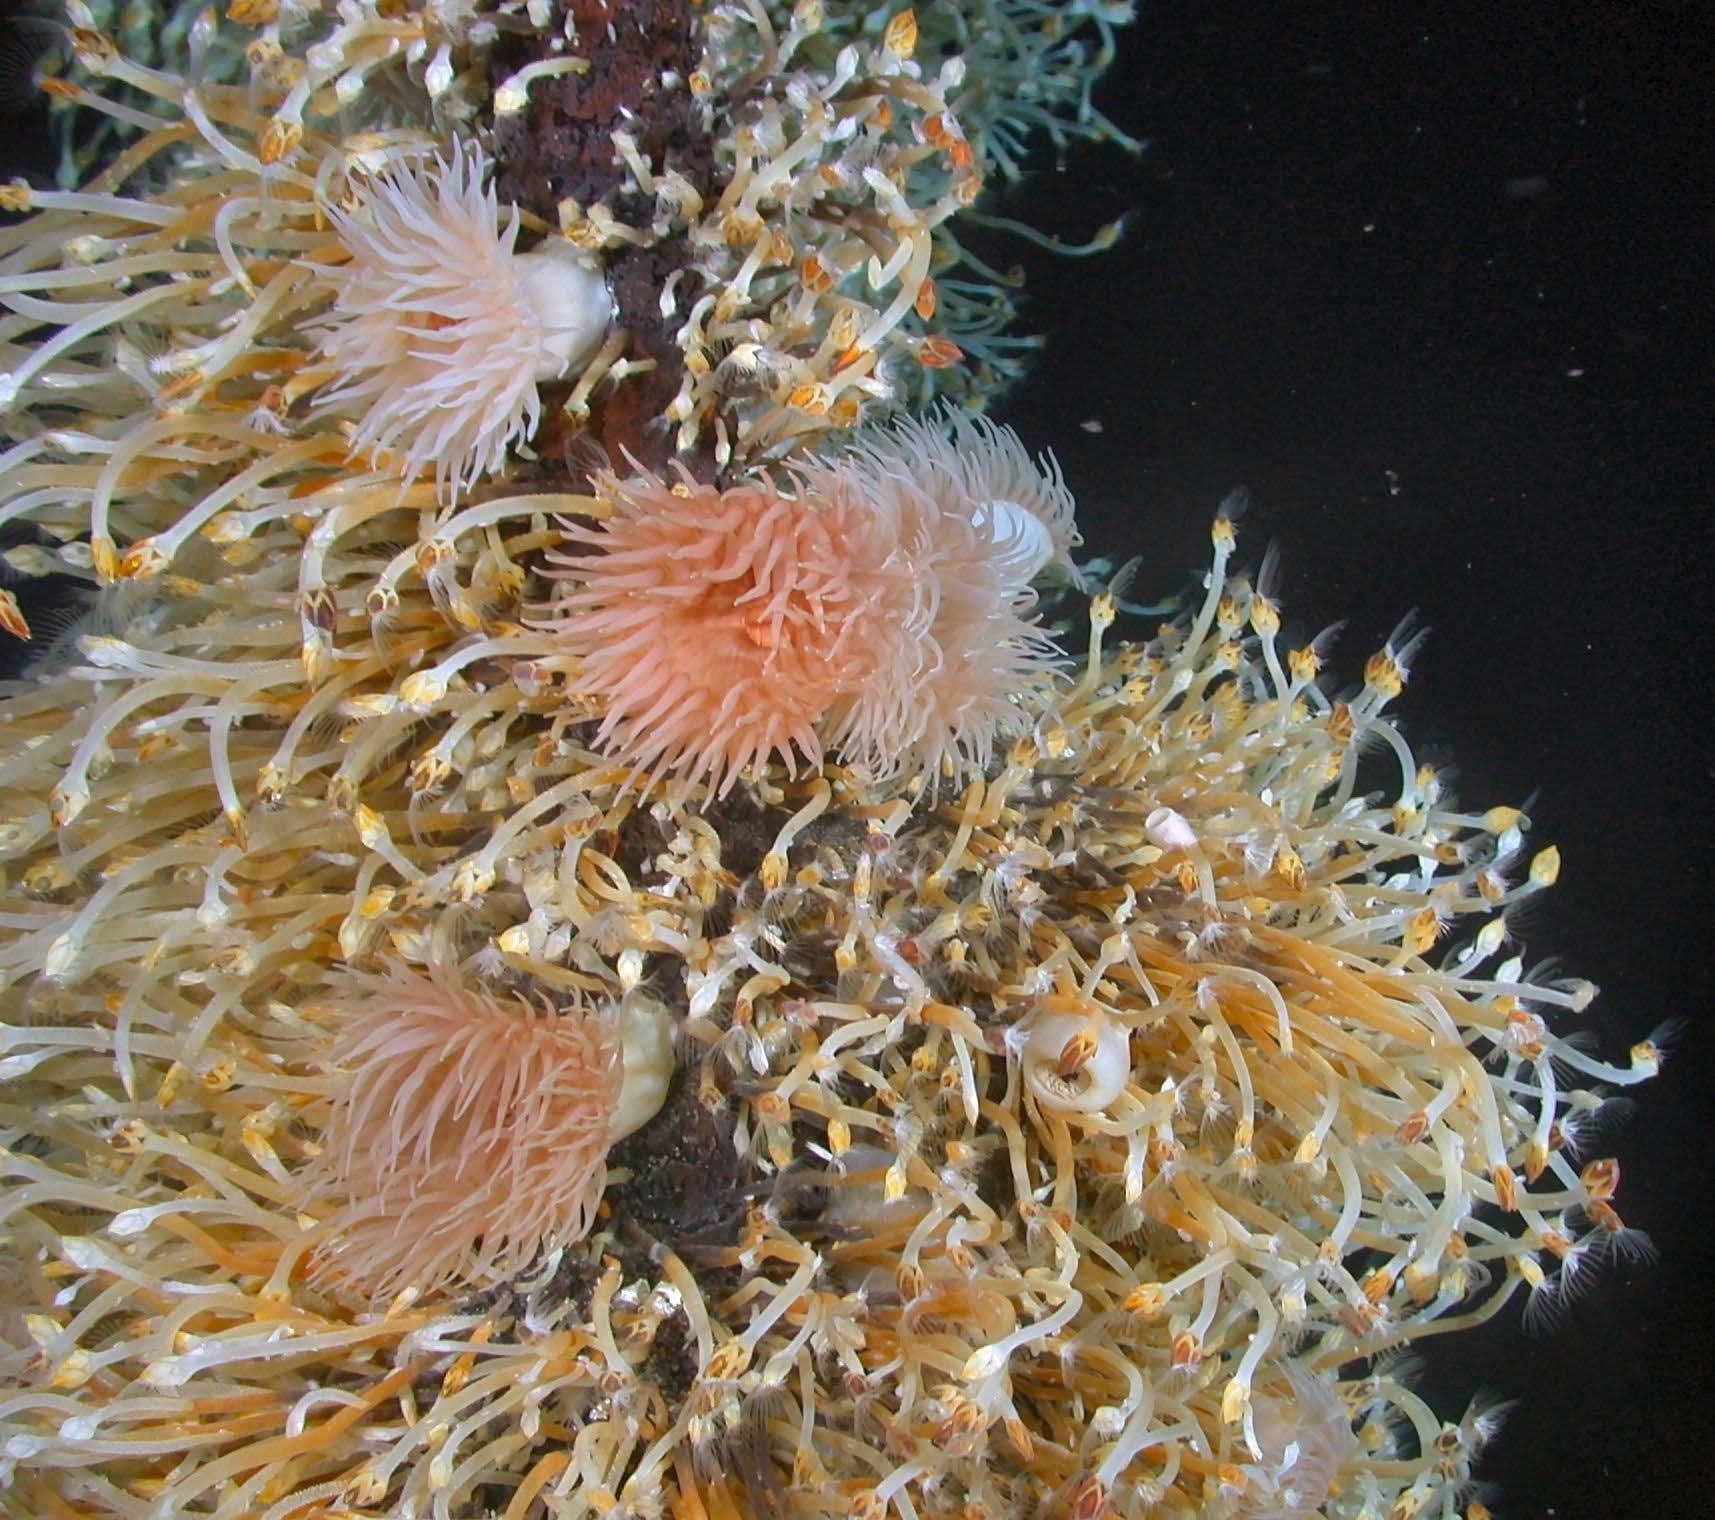 Anemones found living near deep-sea hot springs just north of Antarctica. Oceanographers say they have uncovered the most strikingly unique assemblage of life forms found in decades.